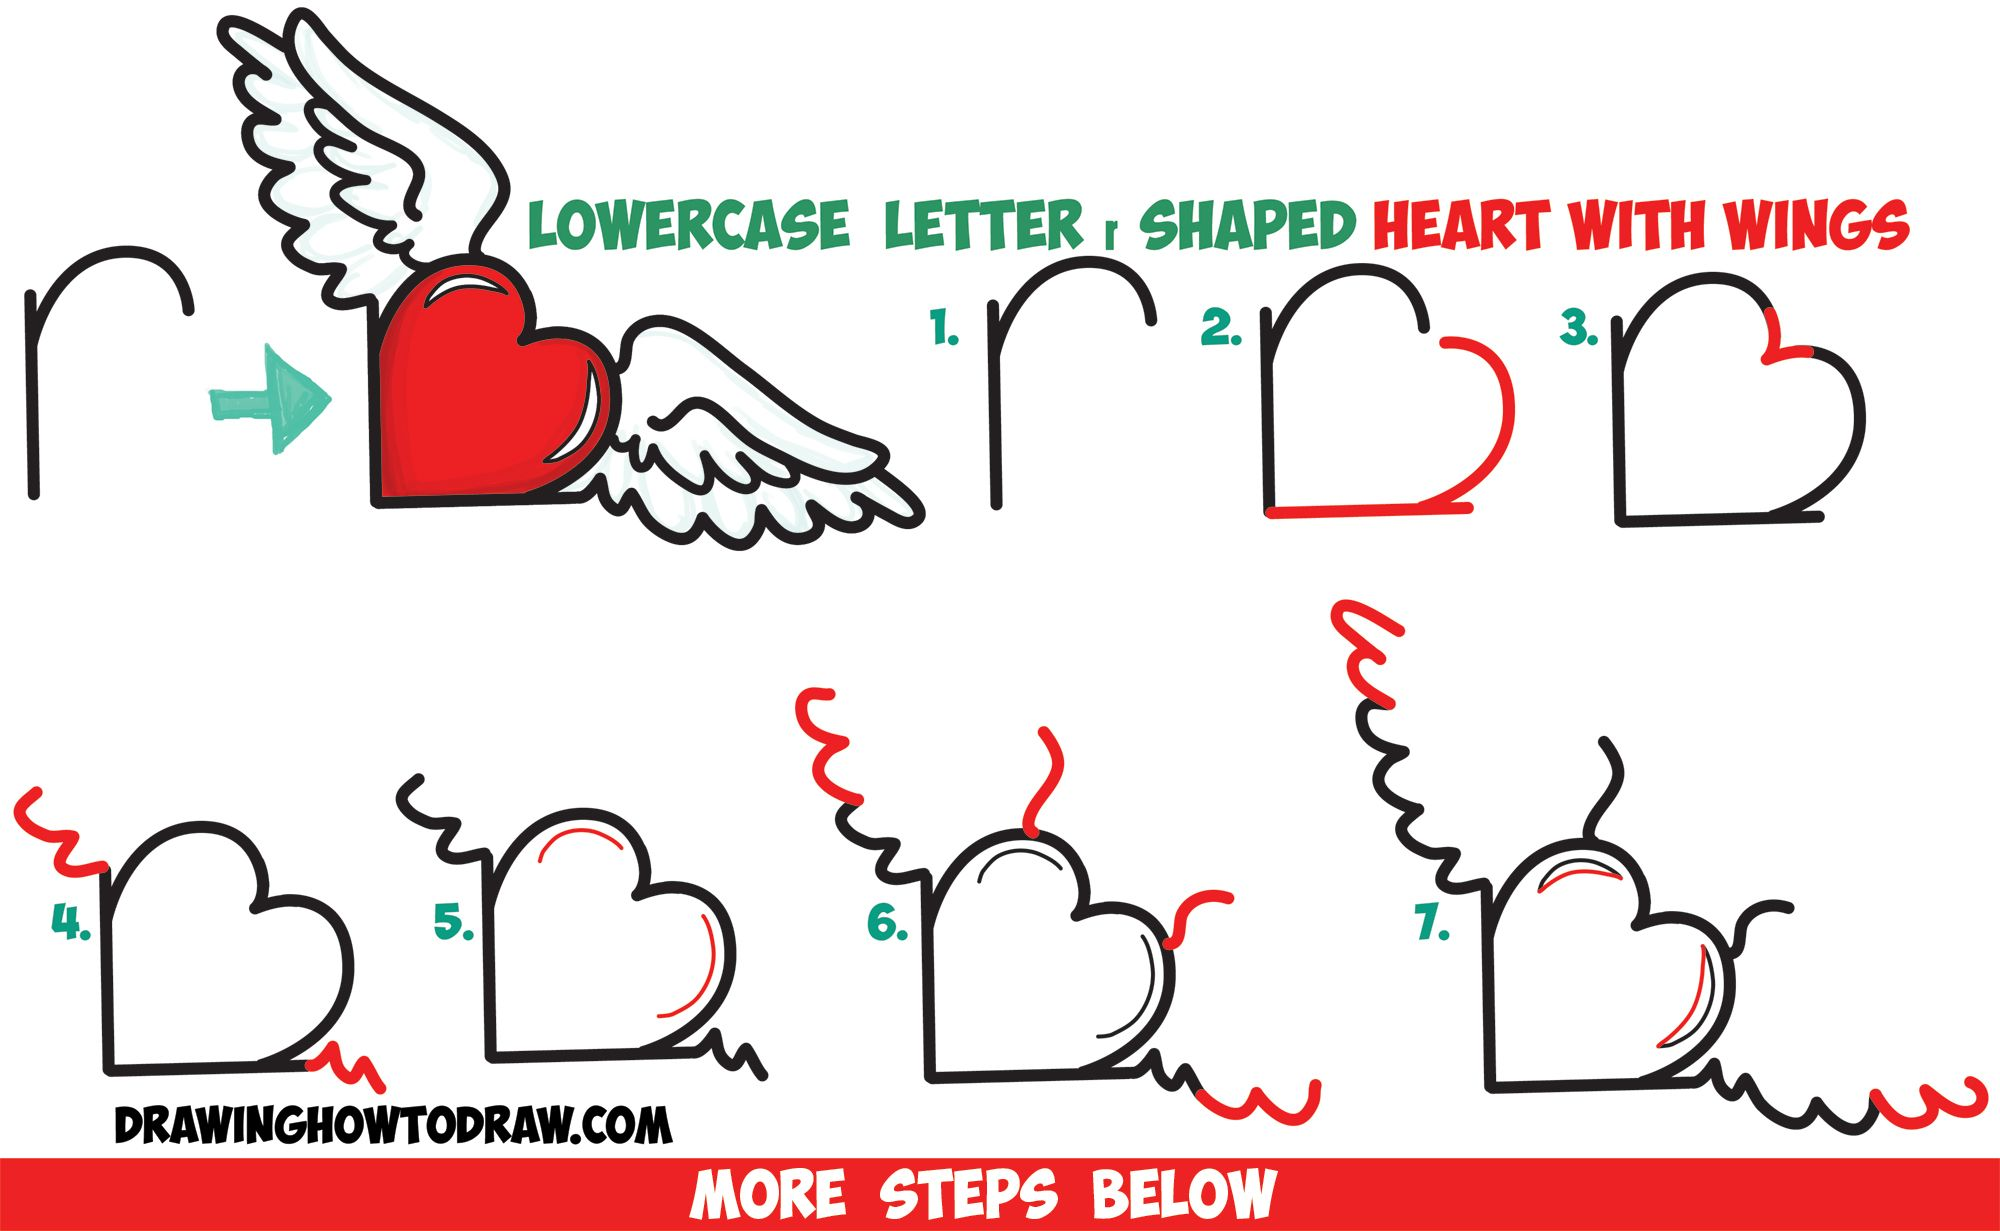 How To Draw Heart With Wings From Lowercase Letter R Shapes Easy Step By Step Drawing Tutorial How To Draw Step By Step Drawing Tutorials Heart Drawing Wings Drawing Drawing Tutorial